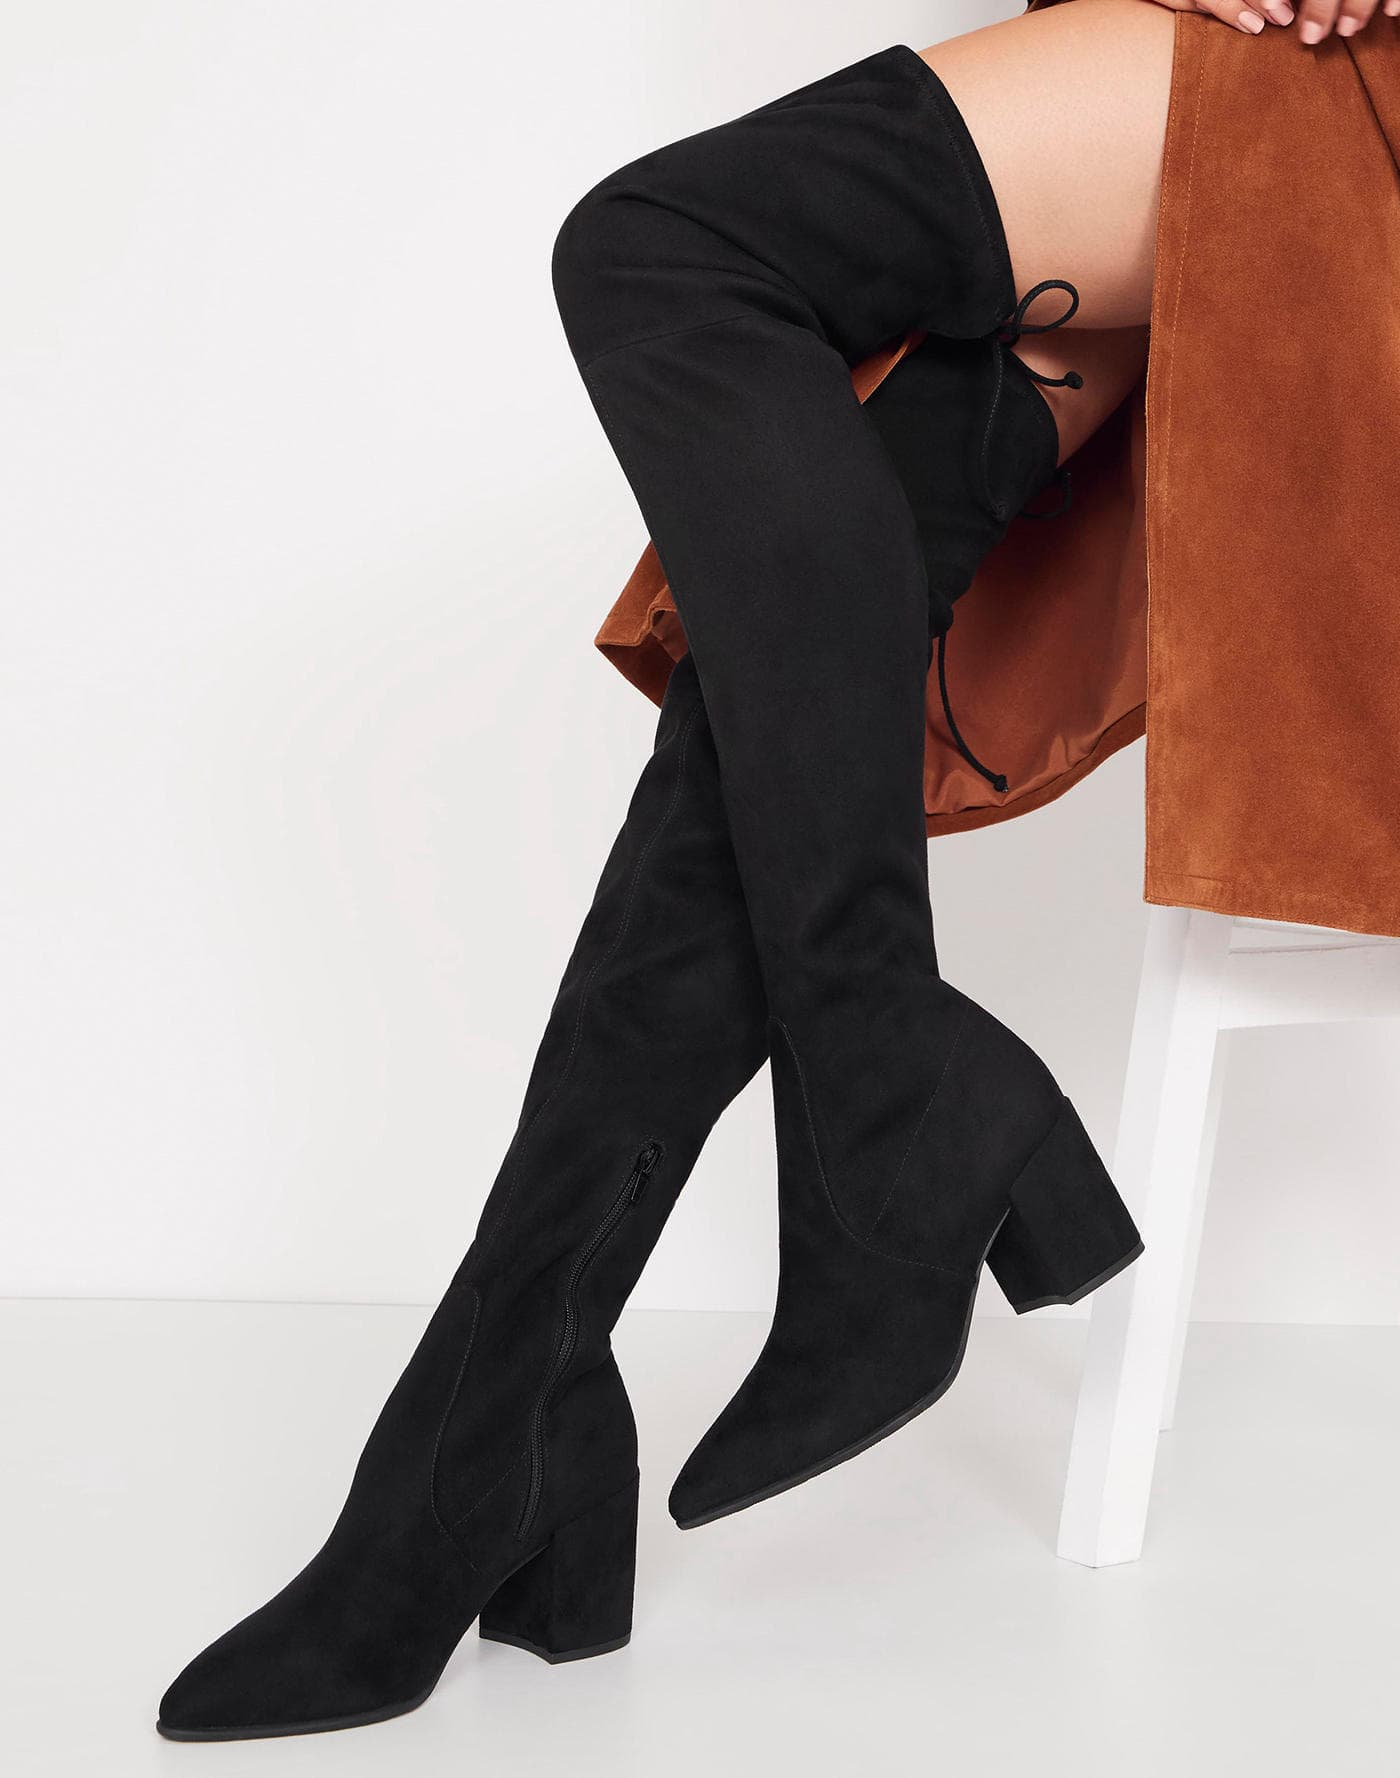 85532a66ce6 Over-the-knee boots